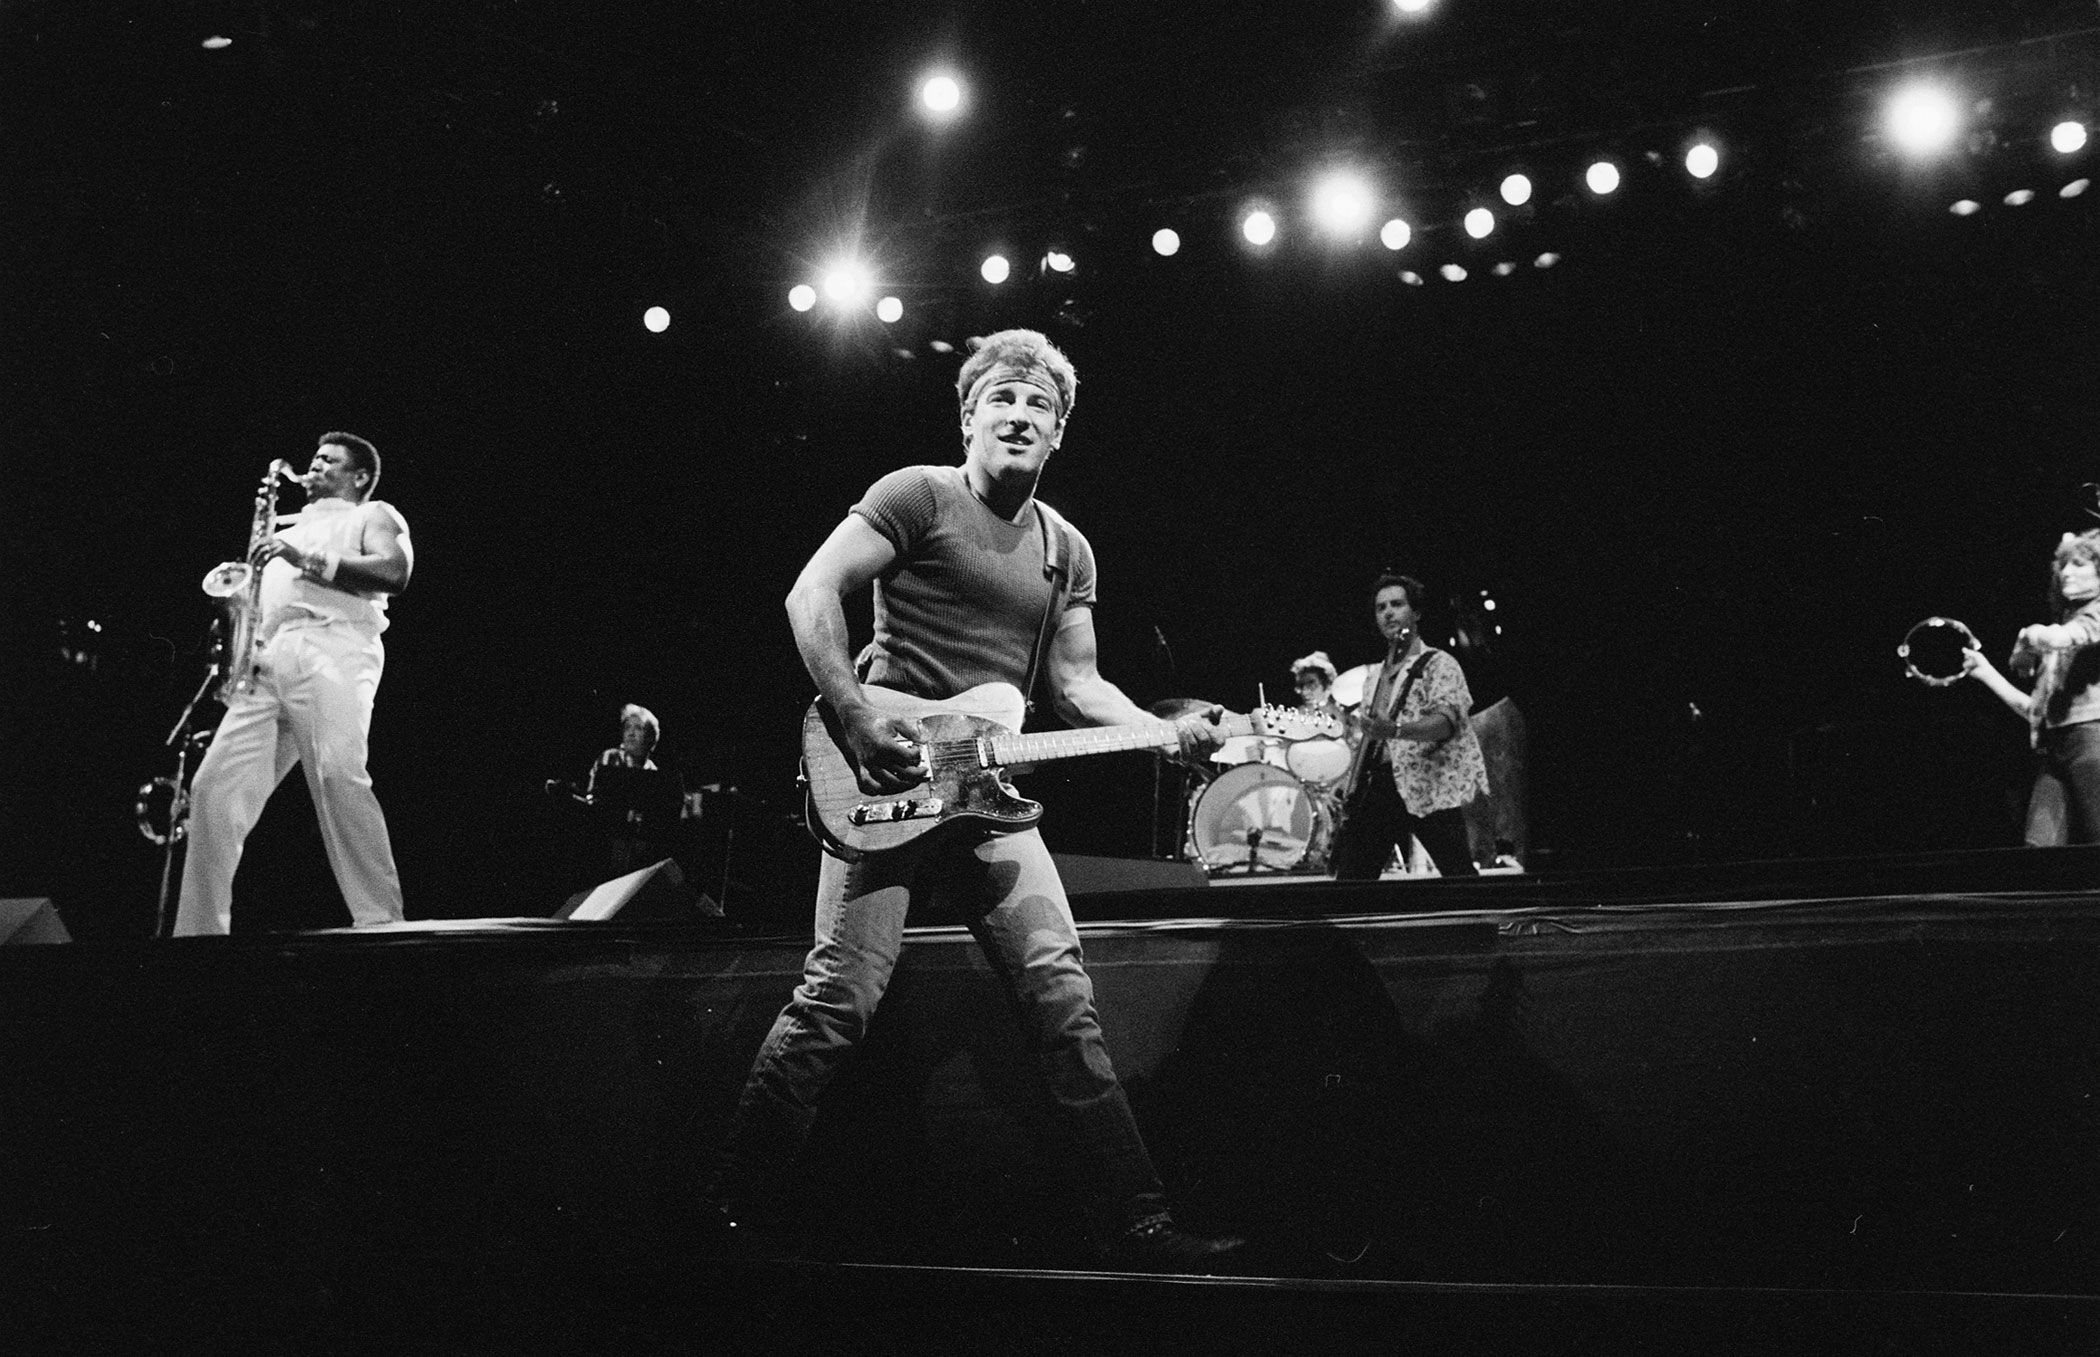 """1985:                                Springsteen beat out David Bowie, Billy Idol, Elton John and John Mellencamp for the Grammy for Best Rock Vocal Performance for his song, """"Dancing in the Dark."""" The incredibly catchy tune was Springsteen's biggest hit and inadvertently made Courteney Cox a star, after casting the then-unknown actress in the video."""